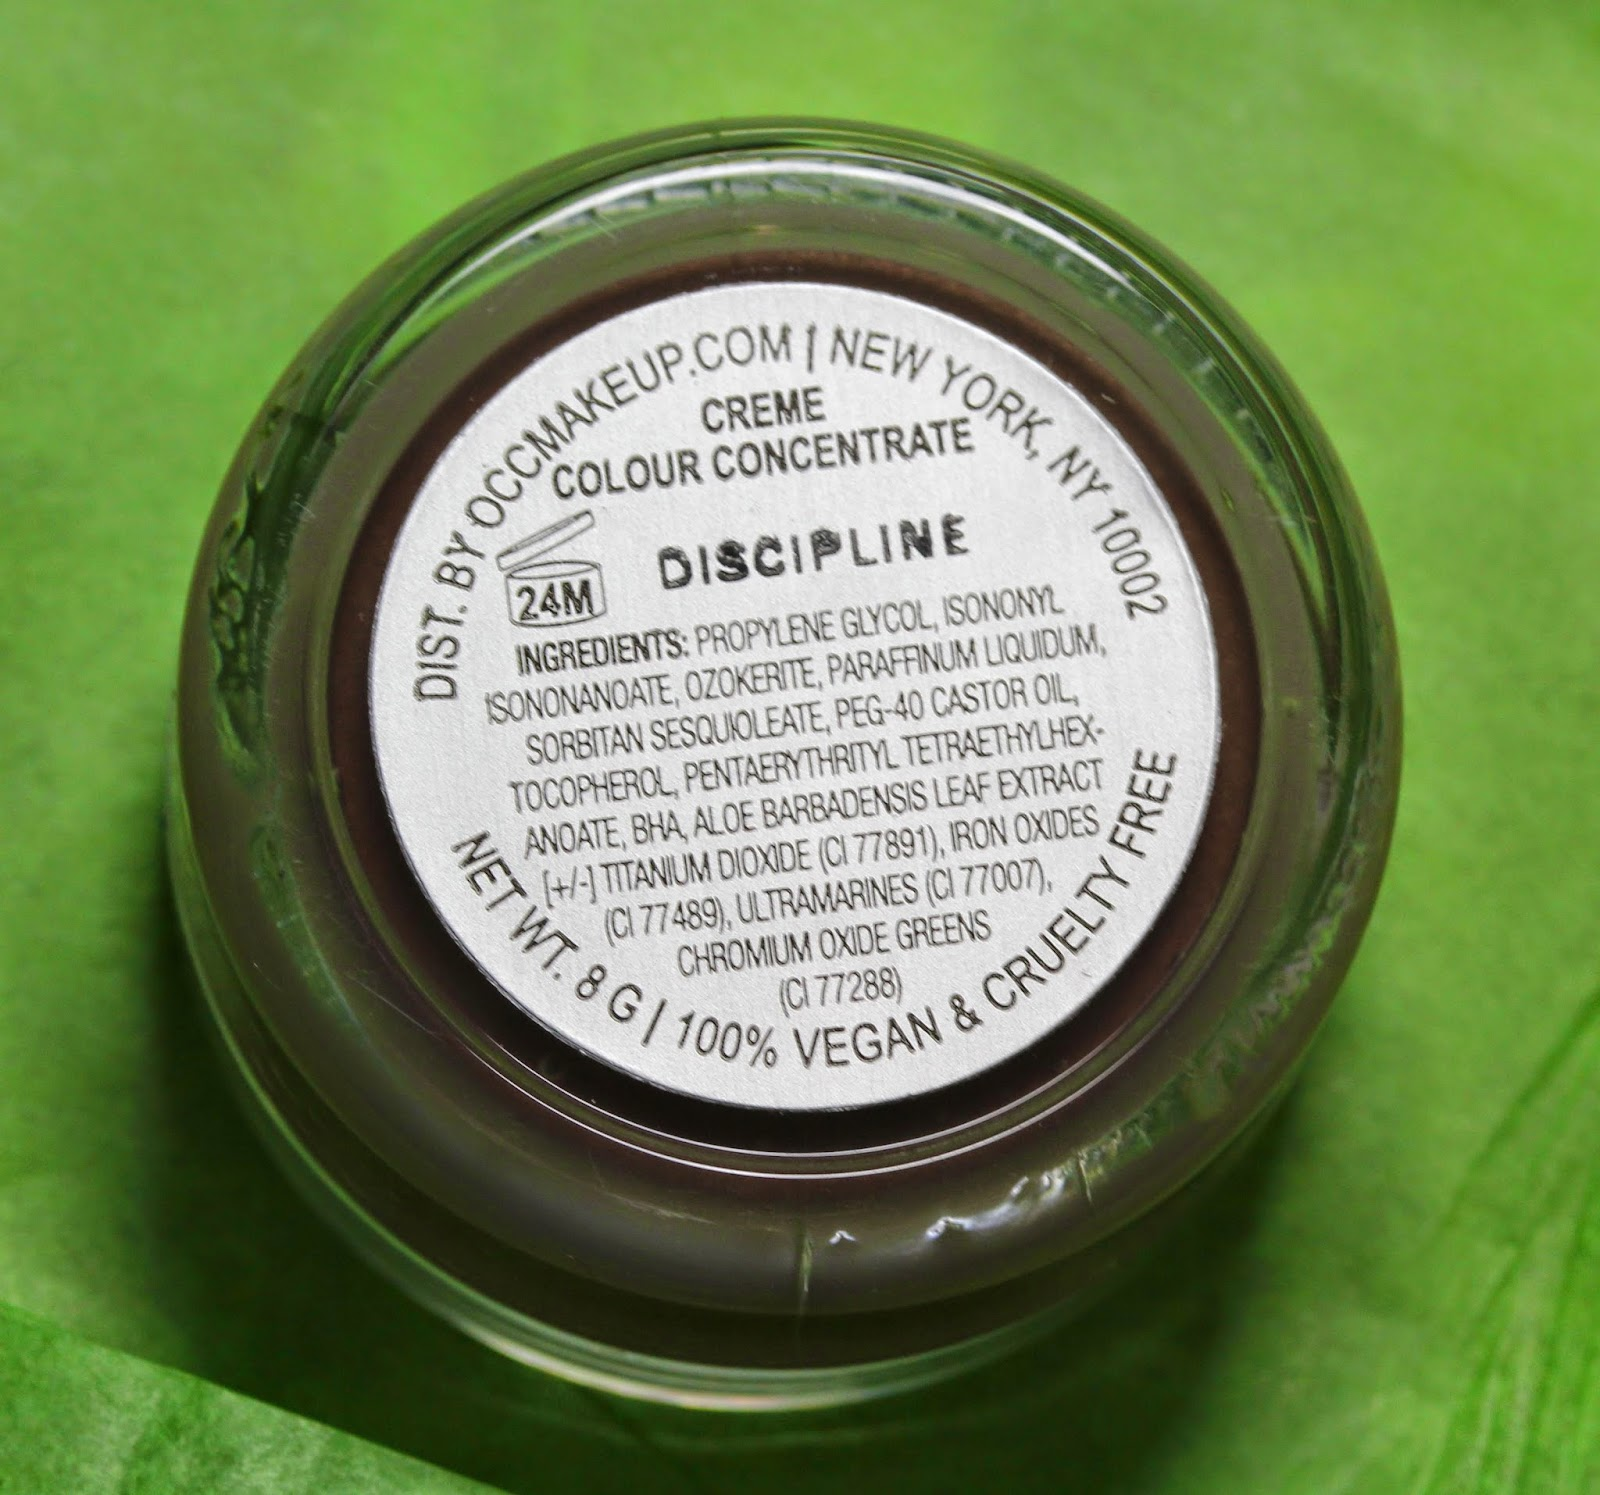 OCC Creme Colour Concentrate in Discipline